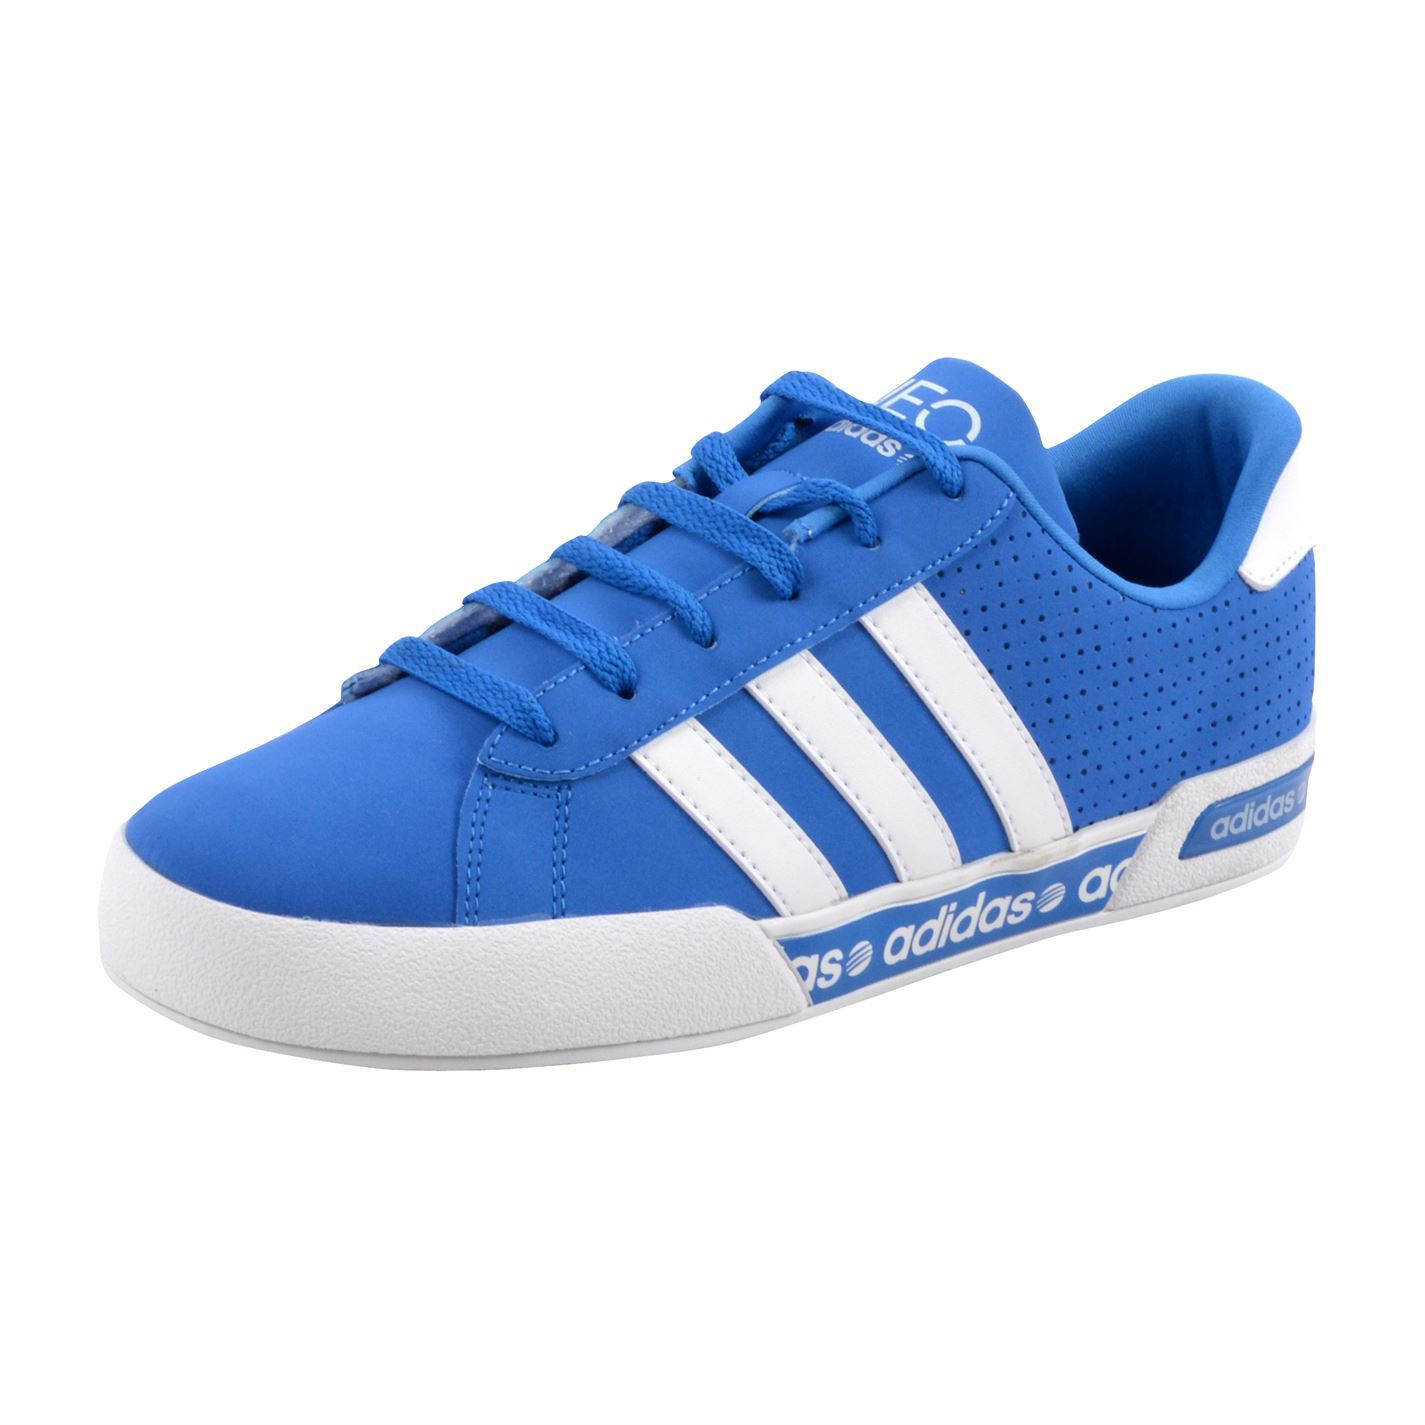 Adidas Neo Daily Mono Front Trainers Pumps Running Running Running Turnschuhe Lace Up Gents Mens 497262